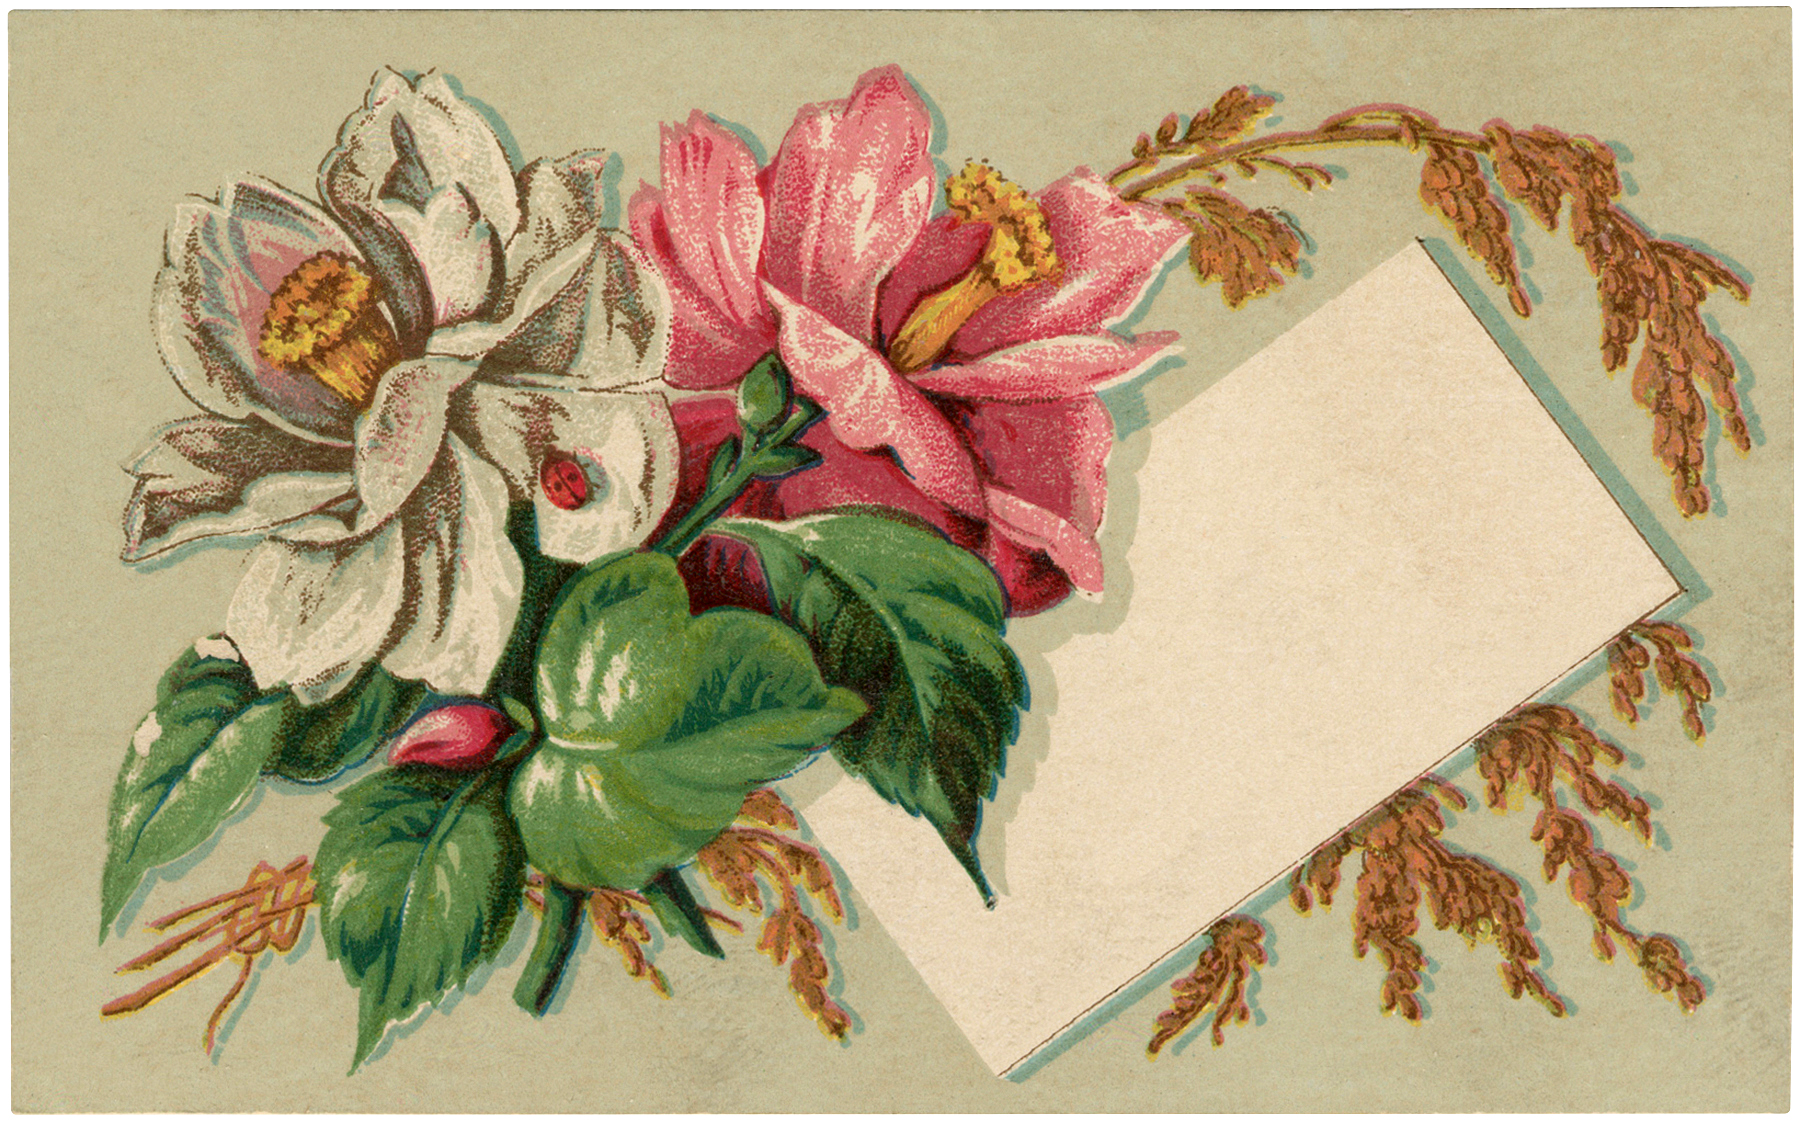 Antique Floral Label Image